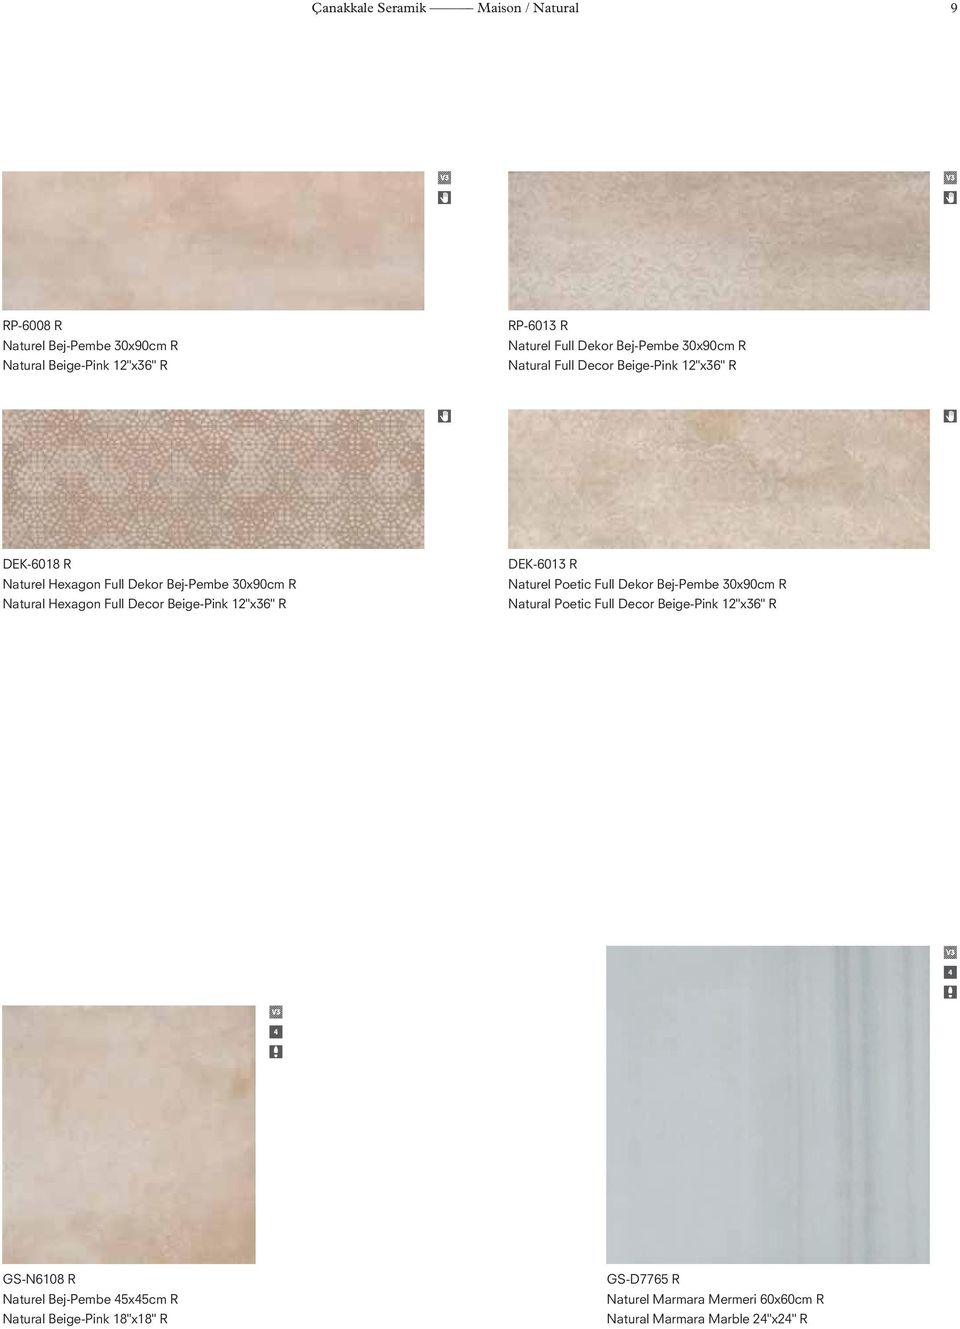 "Full Decor Beige-Pink 12""x36"" R DEK-6013 R Naturel Poetic Full Dekor Bej-Pembe 30x90cm R Natural Poetic Full Decor Beige-Pink 12""x36"" R"